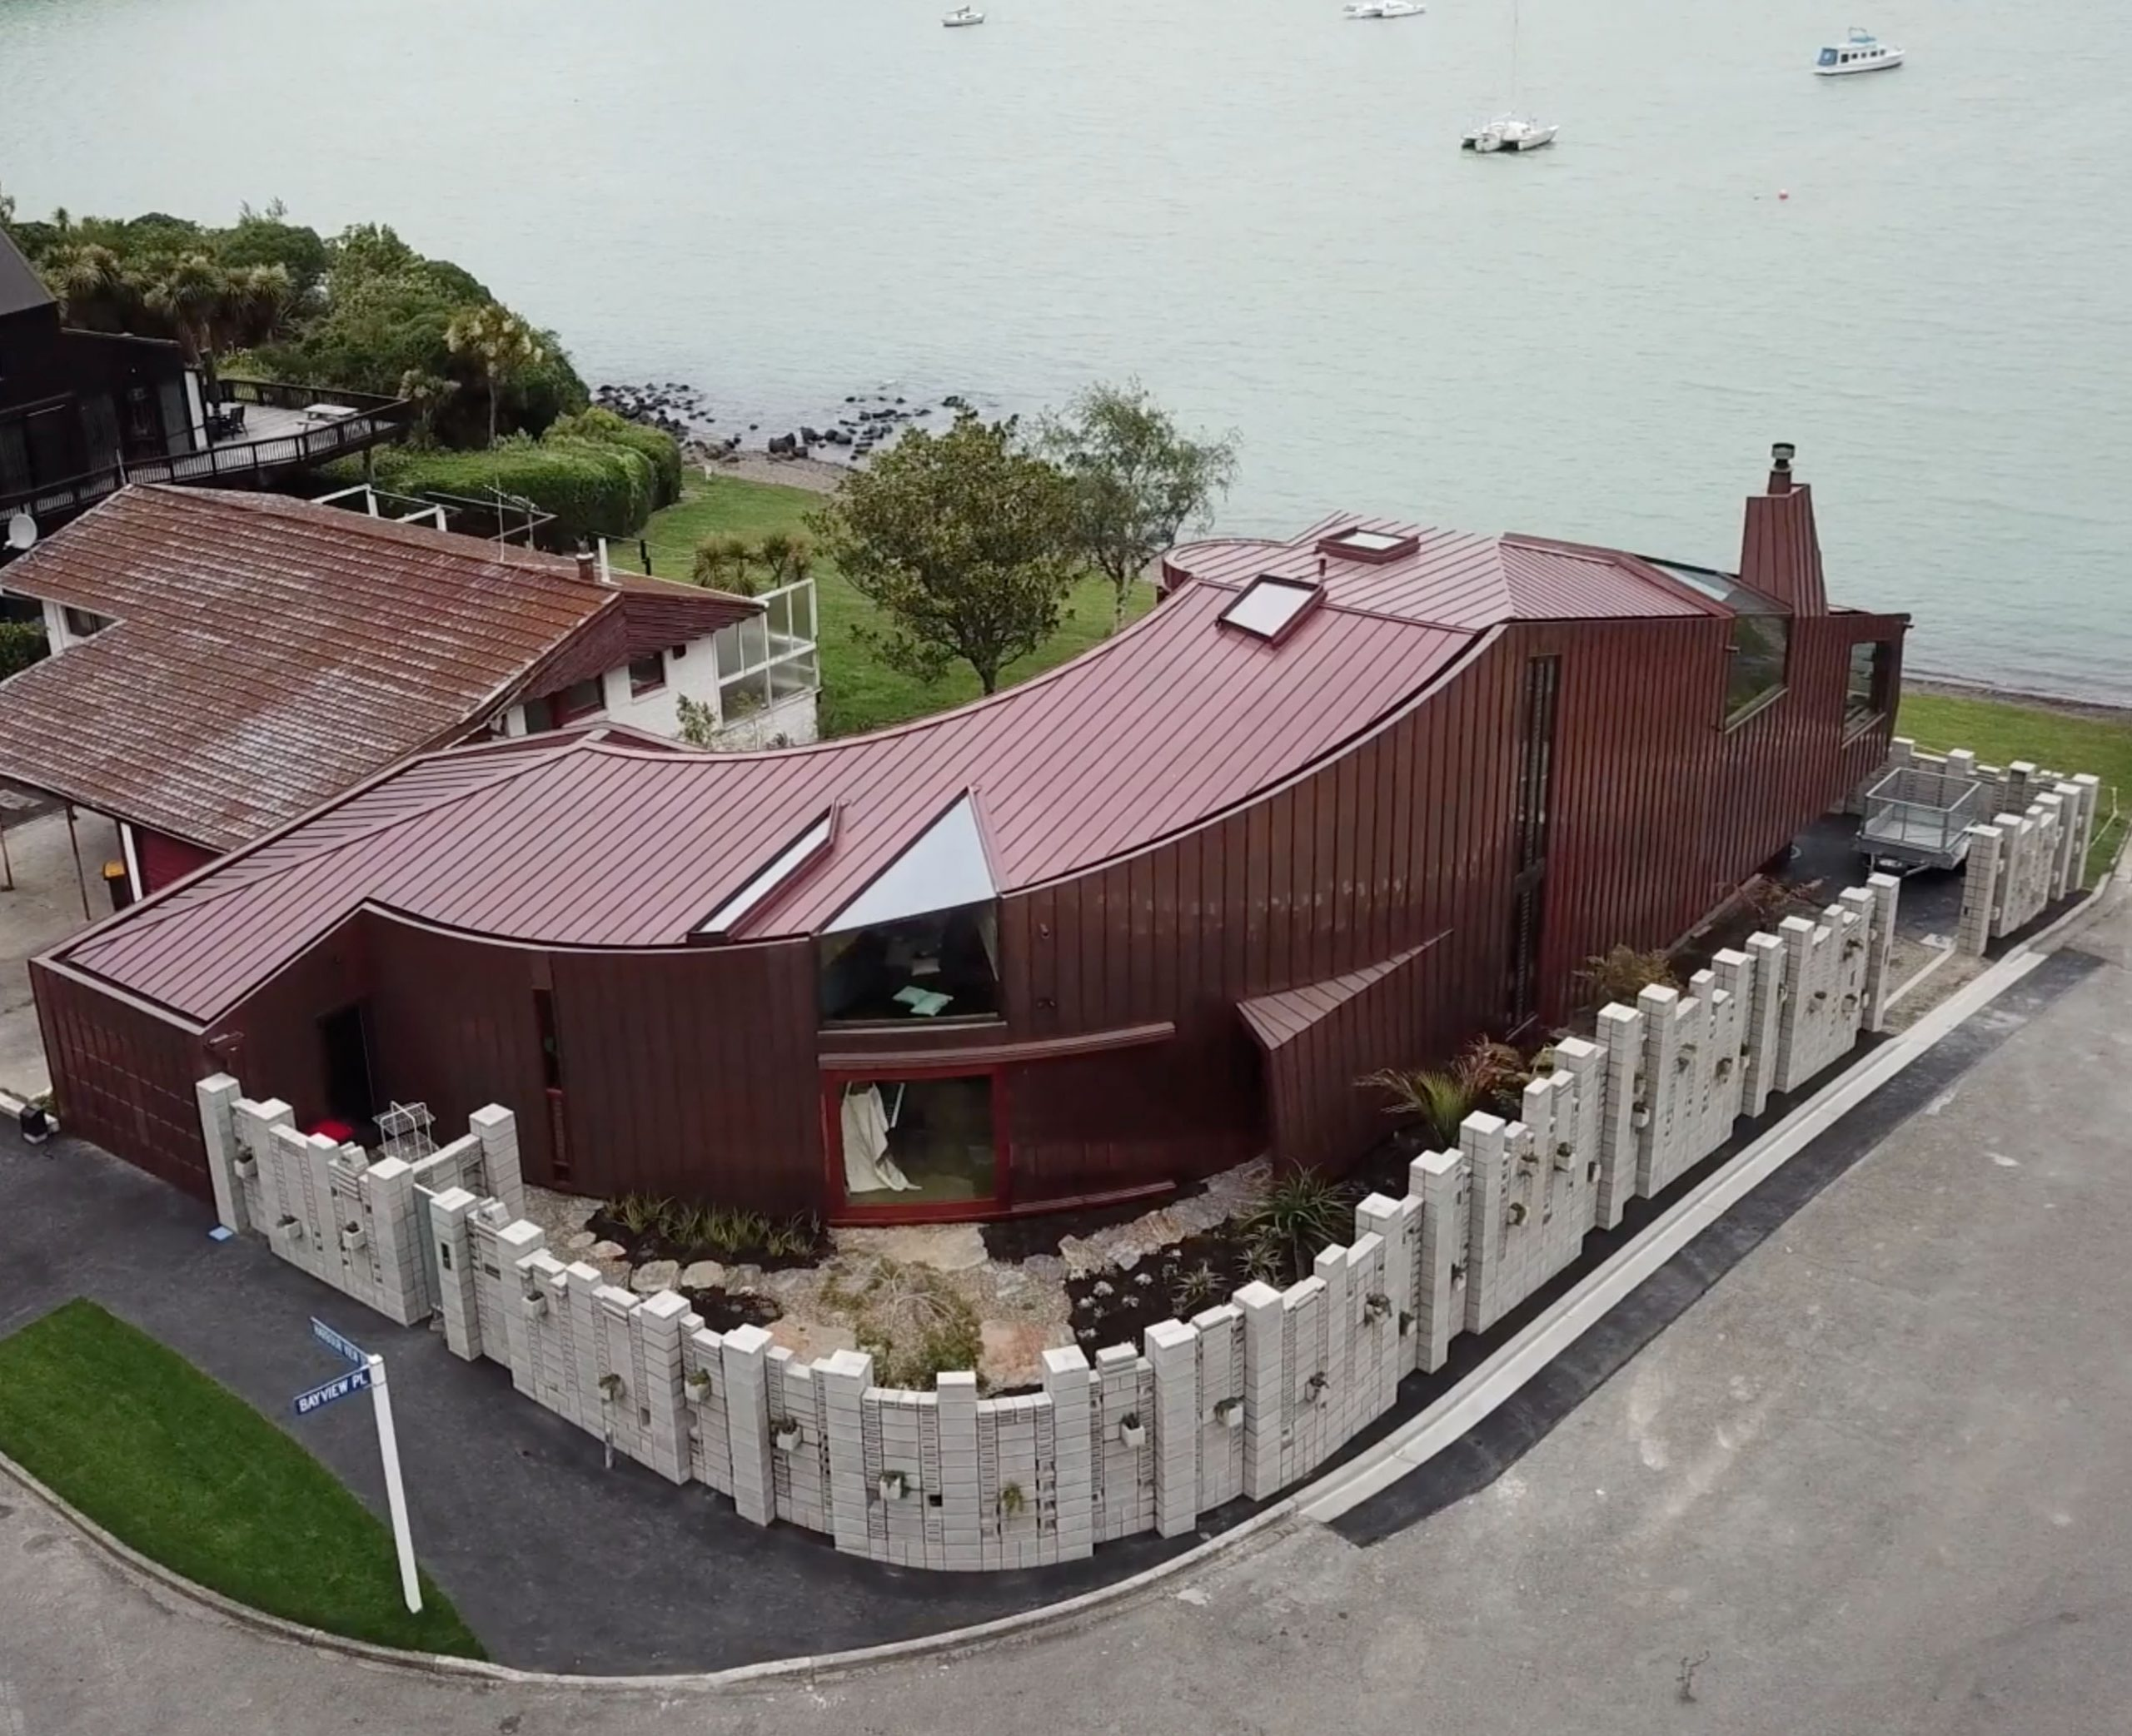 Aerial view of the Cass Bay House located in New Zealand. Some water is visible in the background. The copper walls of the building are clad from Nordic Standard copper.